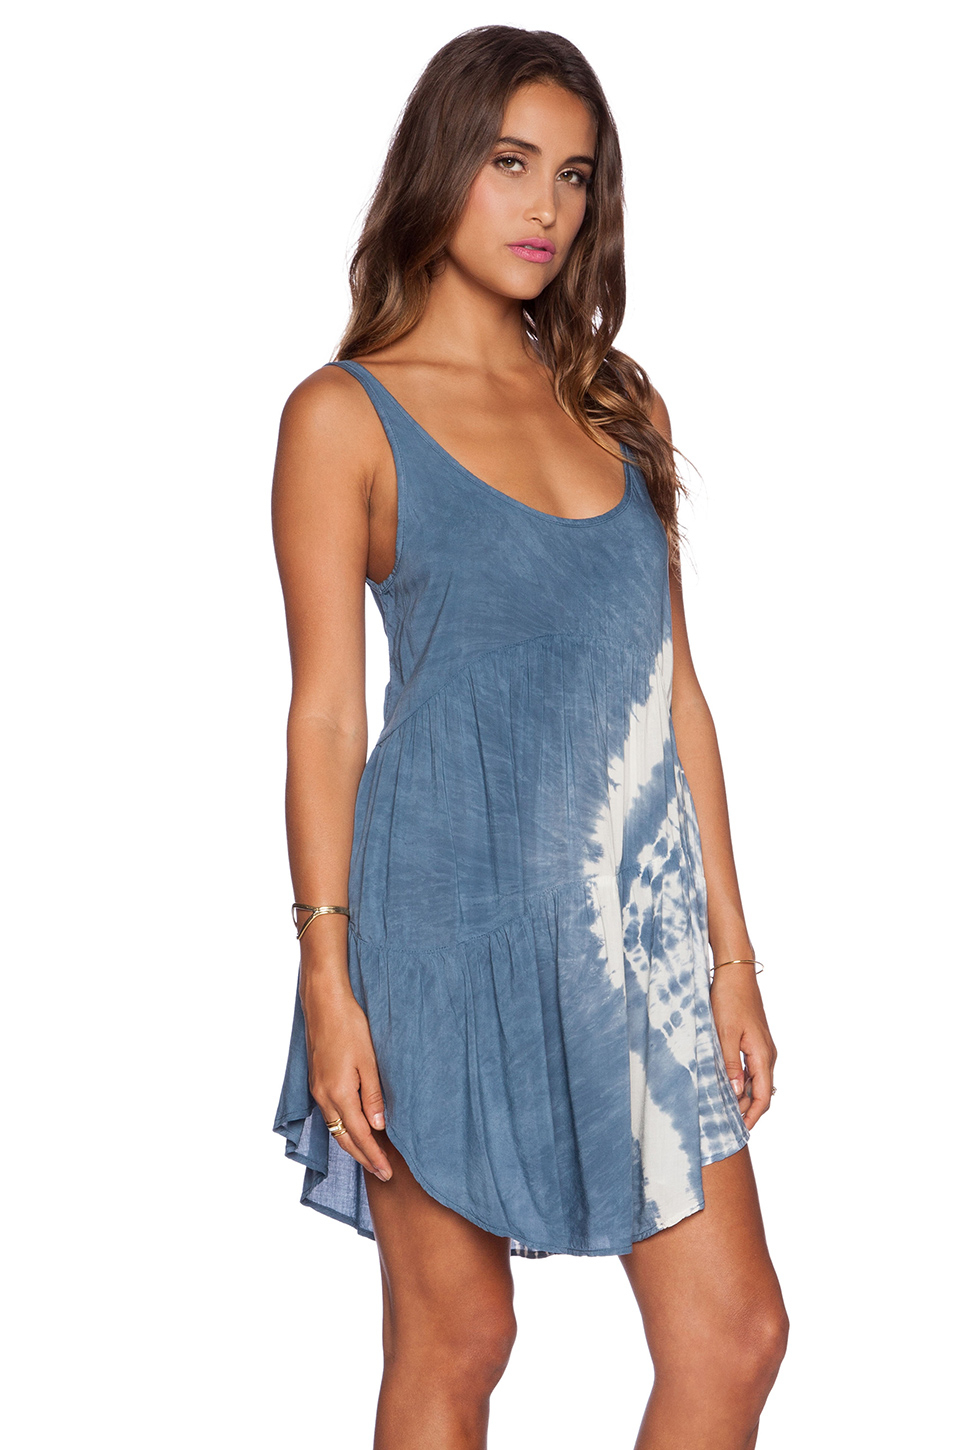 Lyst - Blue Life Baby Doll Tank Dress in Blue